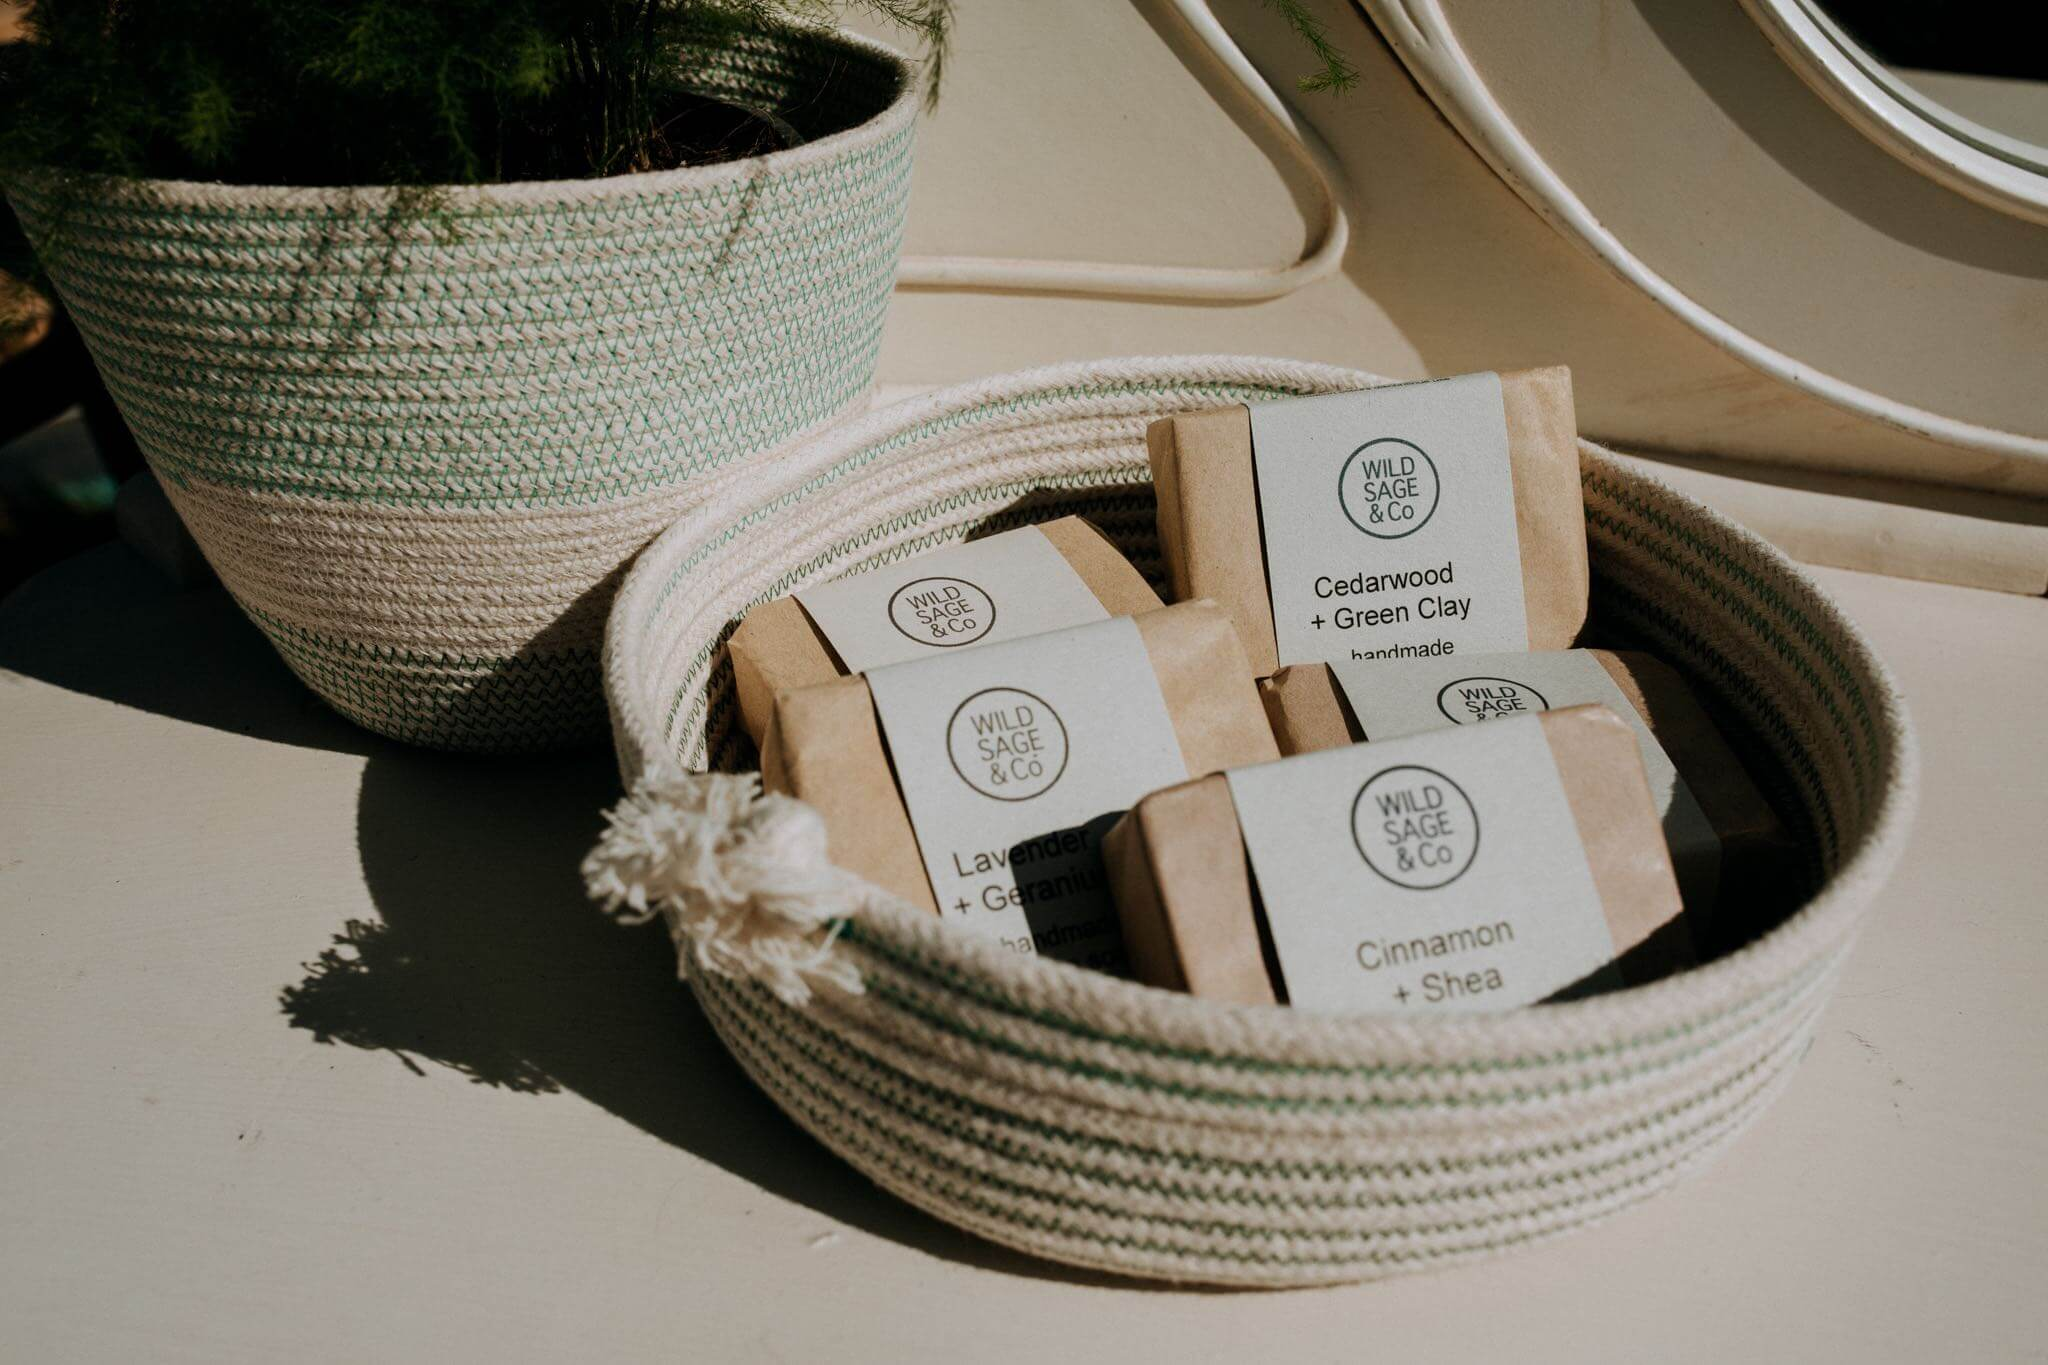 wild sage soaps in rope bowl